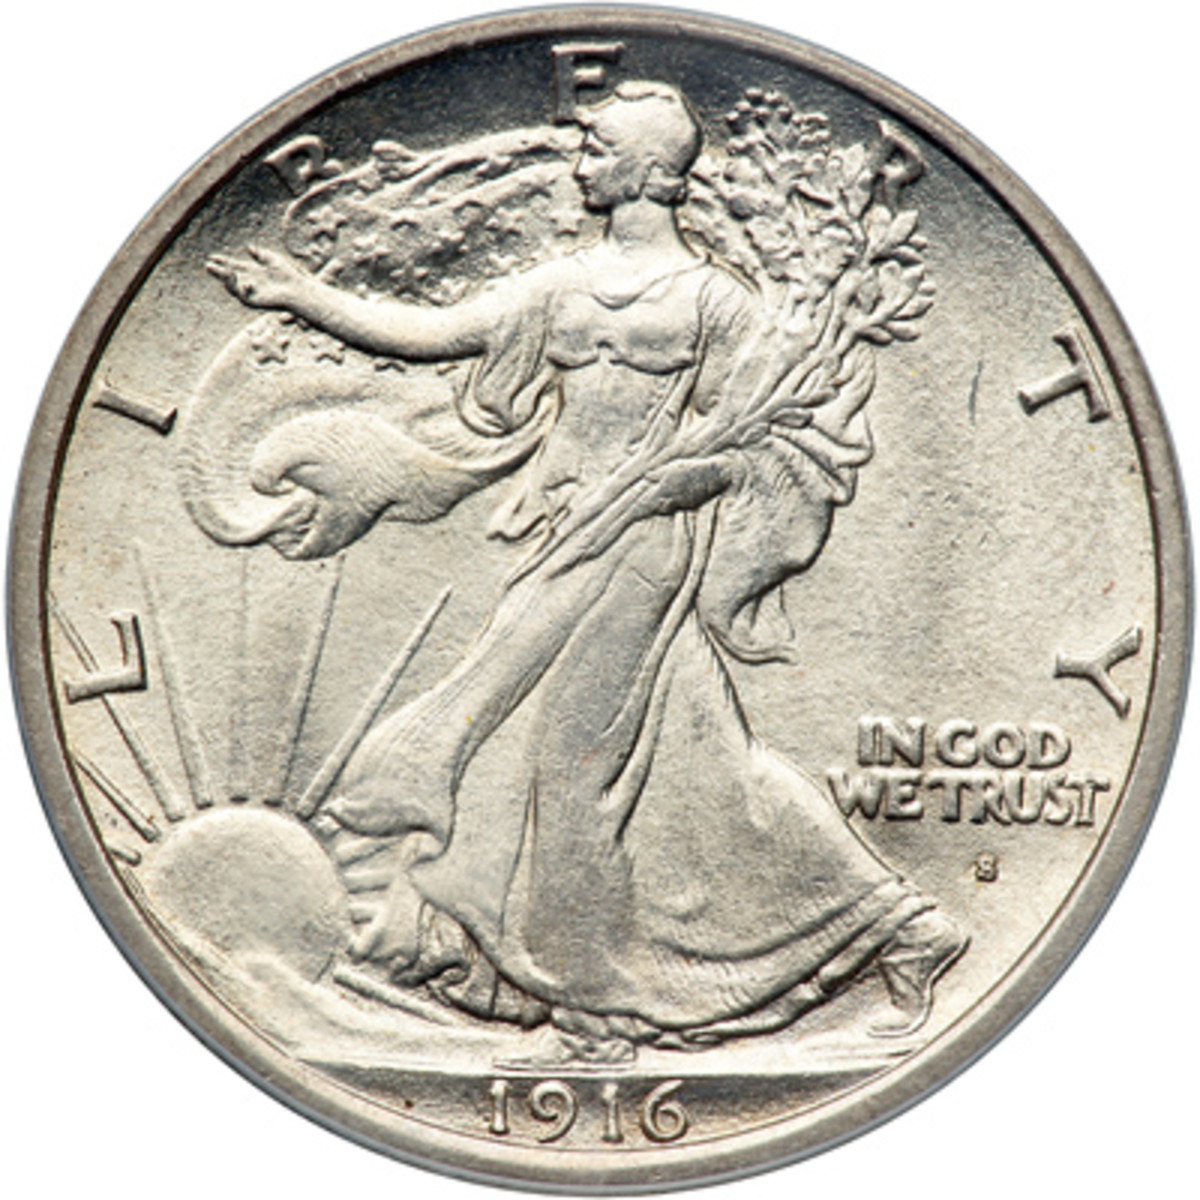 Liberty Half Dollar coin featuring Audrey Munson